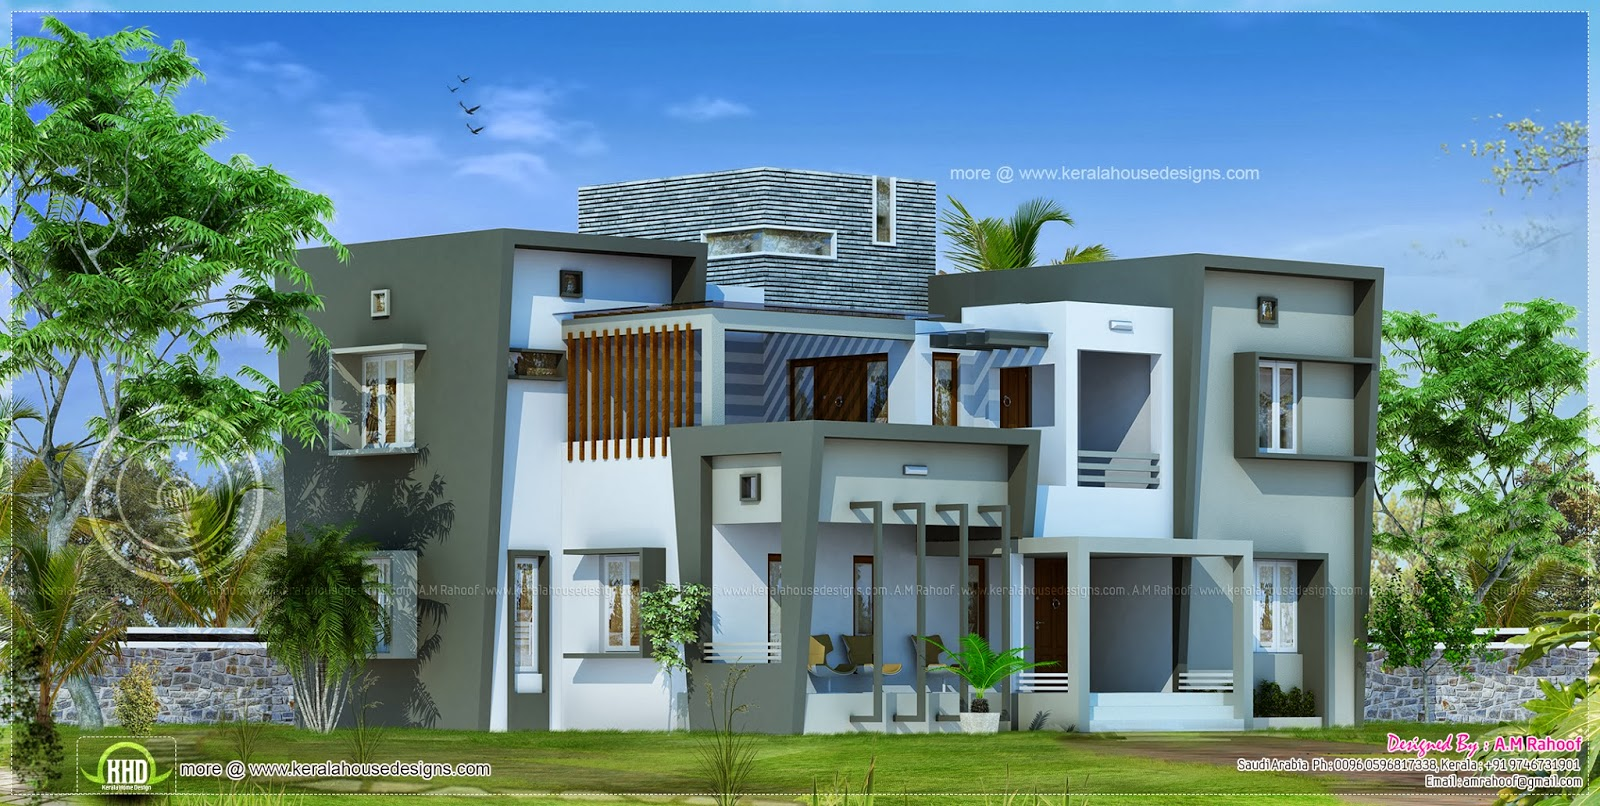 Modern house design in 2850 square feet home kerala plans Home design house plans